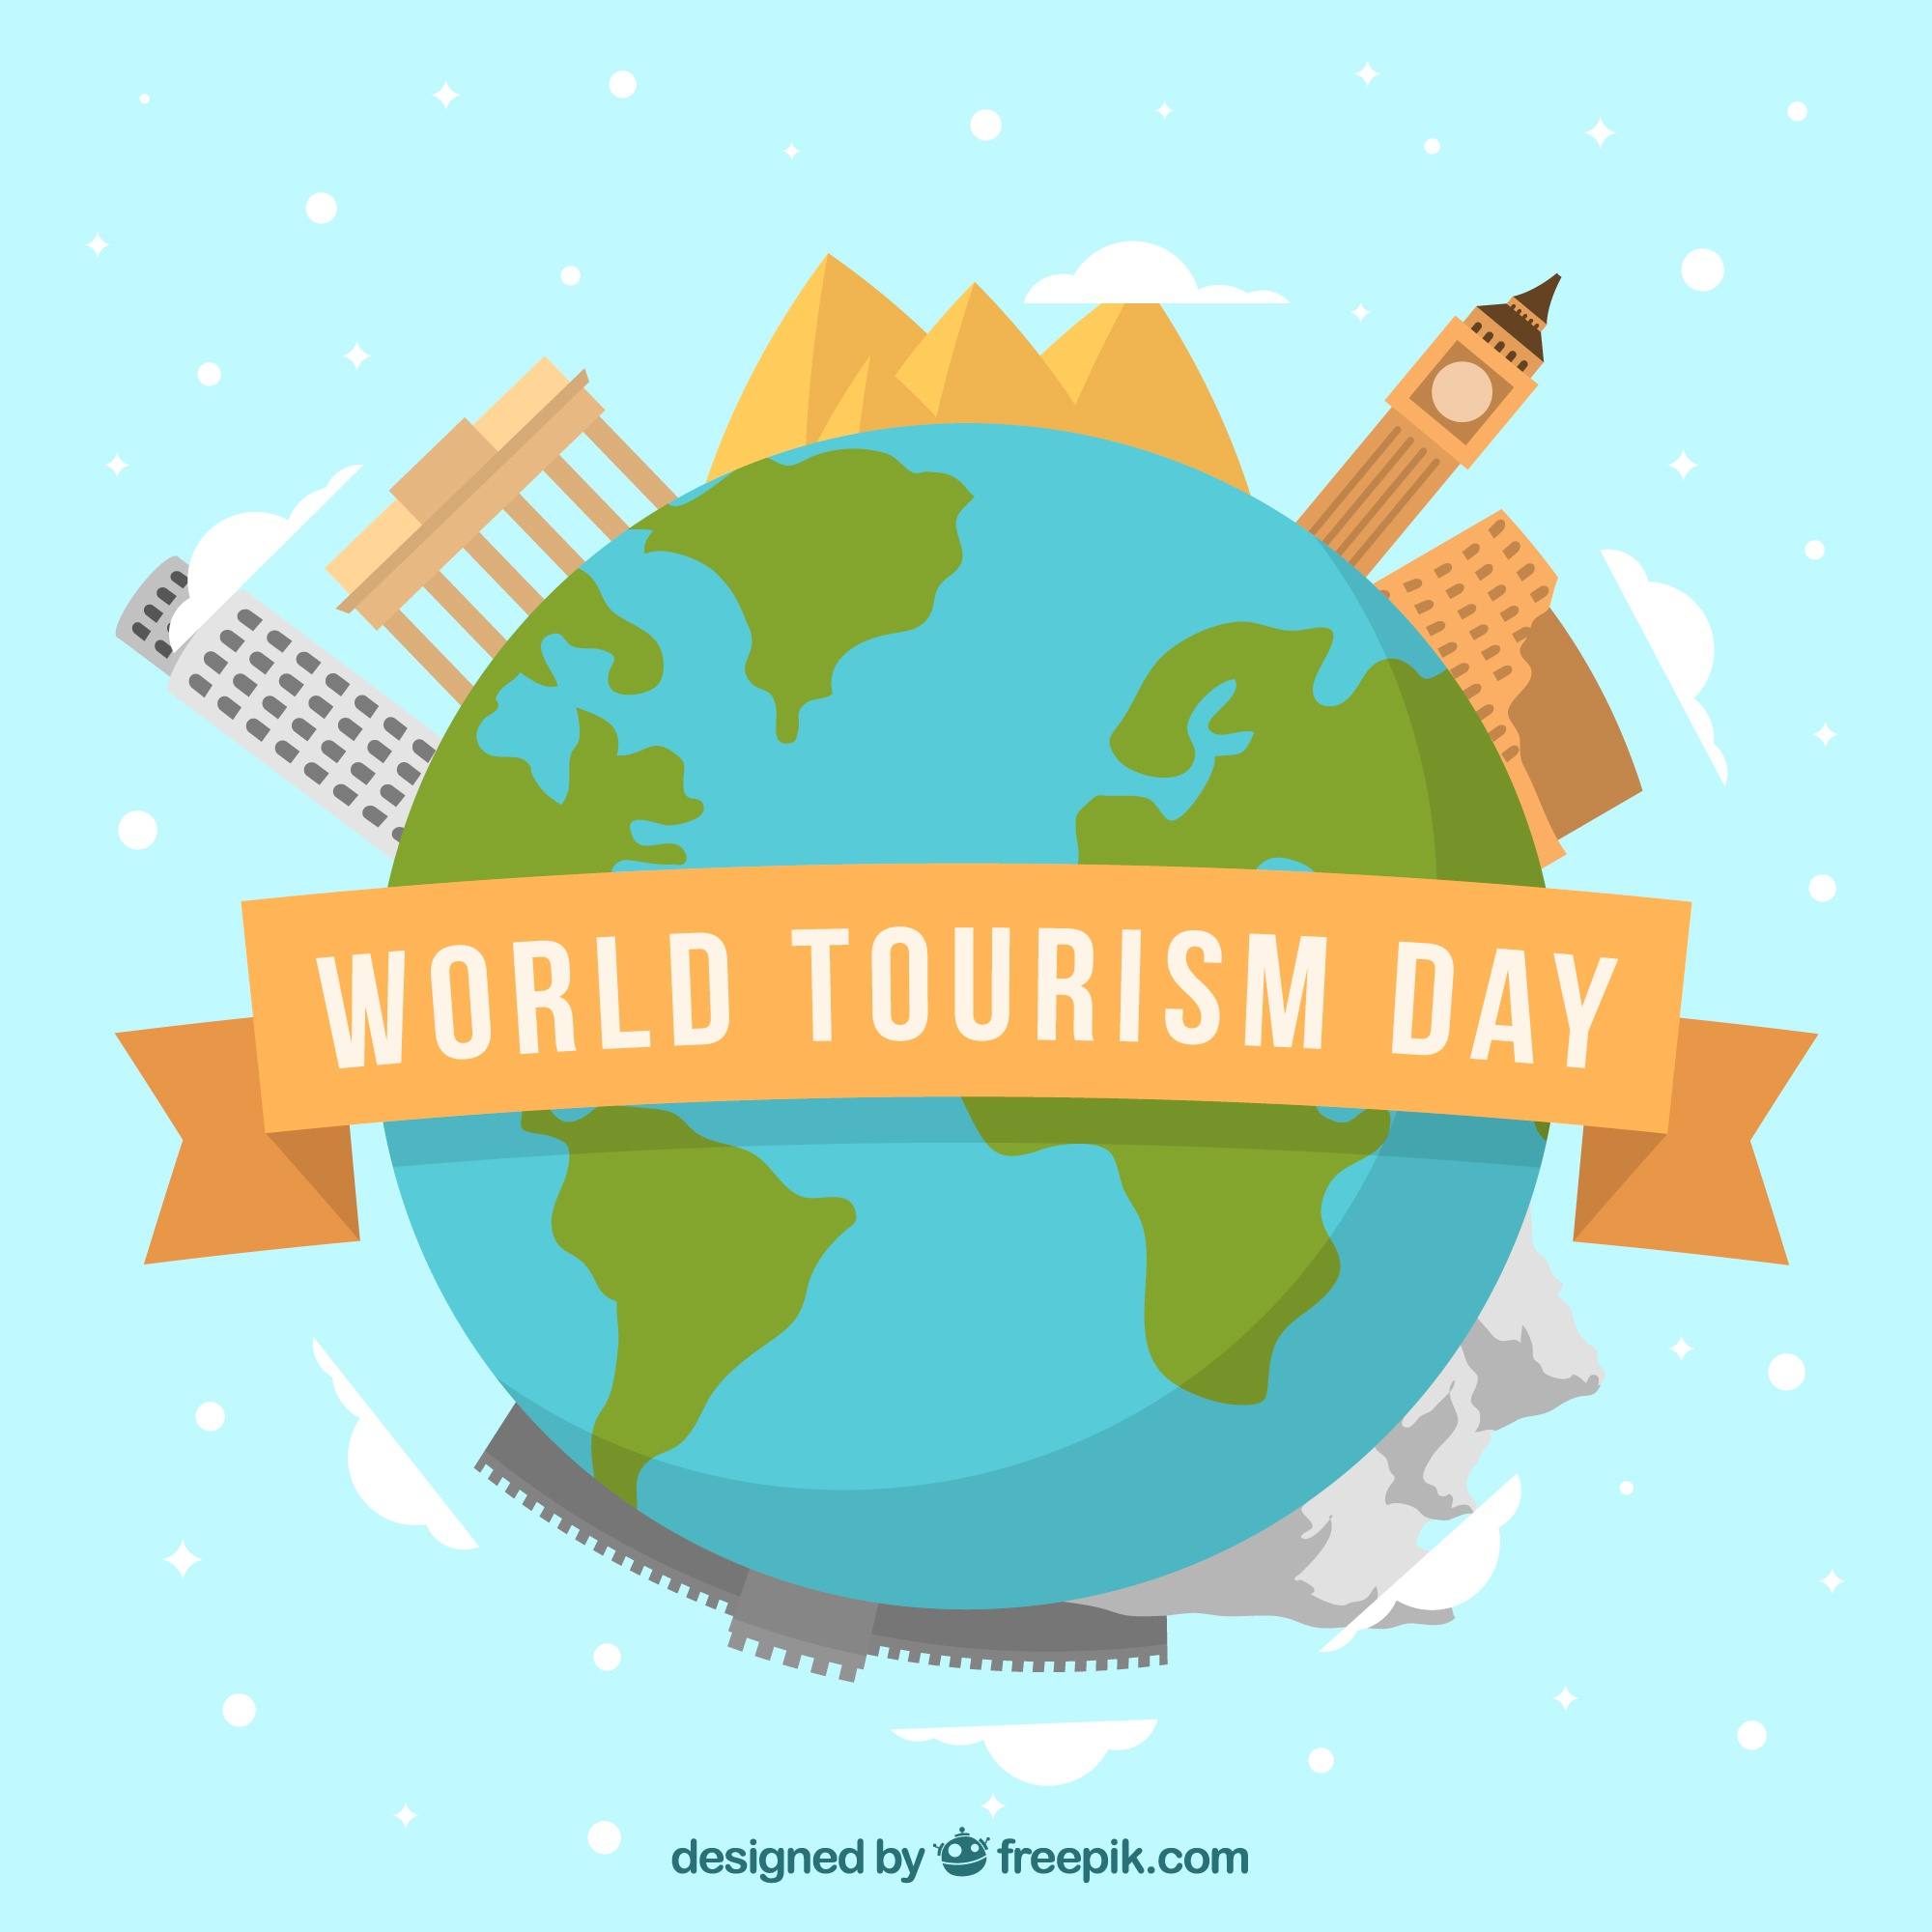 Planet earth with monuments, world tourism day